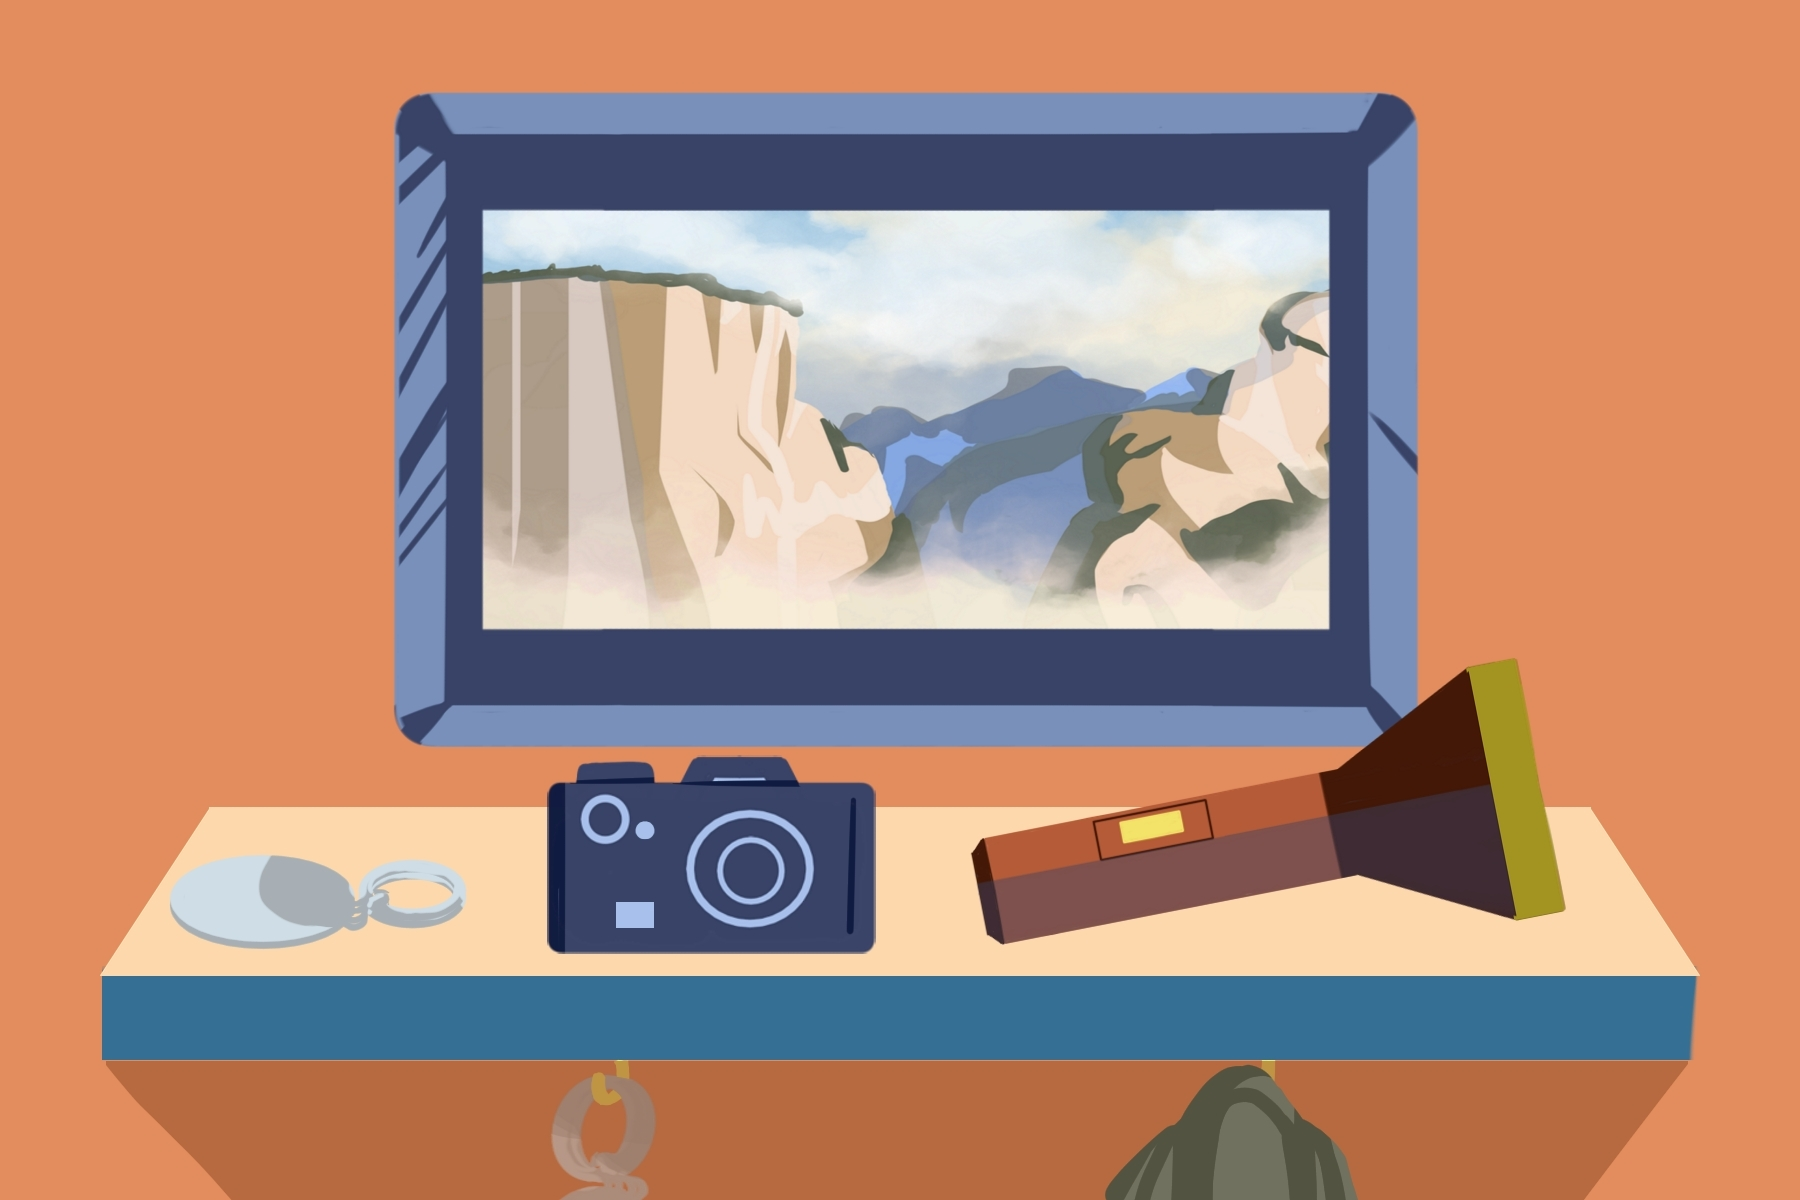 In an article about road trips, an illustration by Elizabeth Wong of a screen with a canyon on it, with a camera and flashlight in front